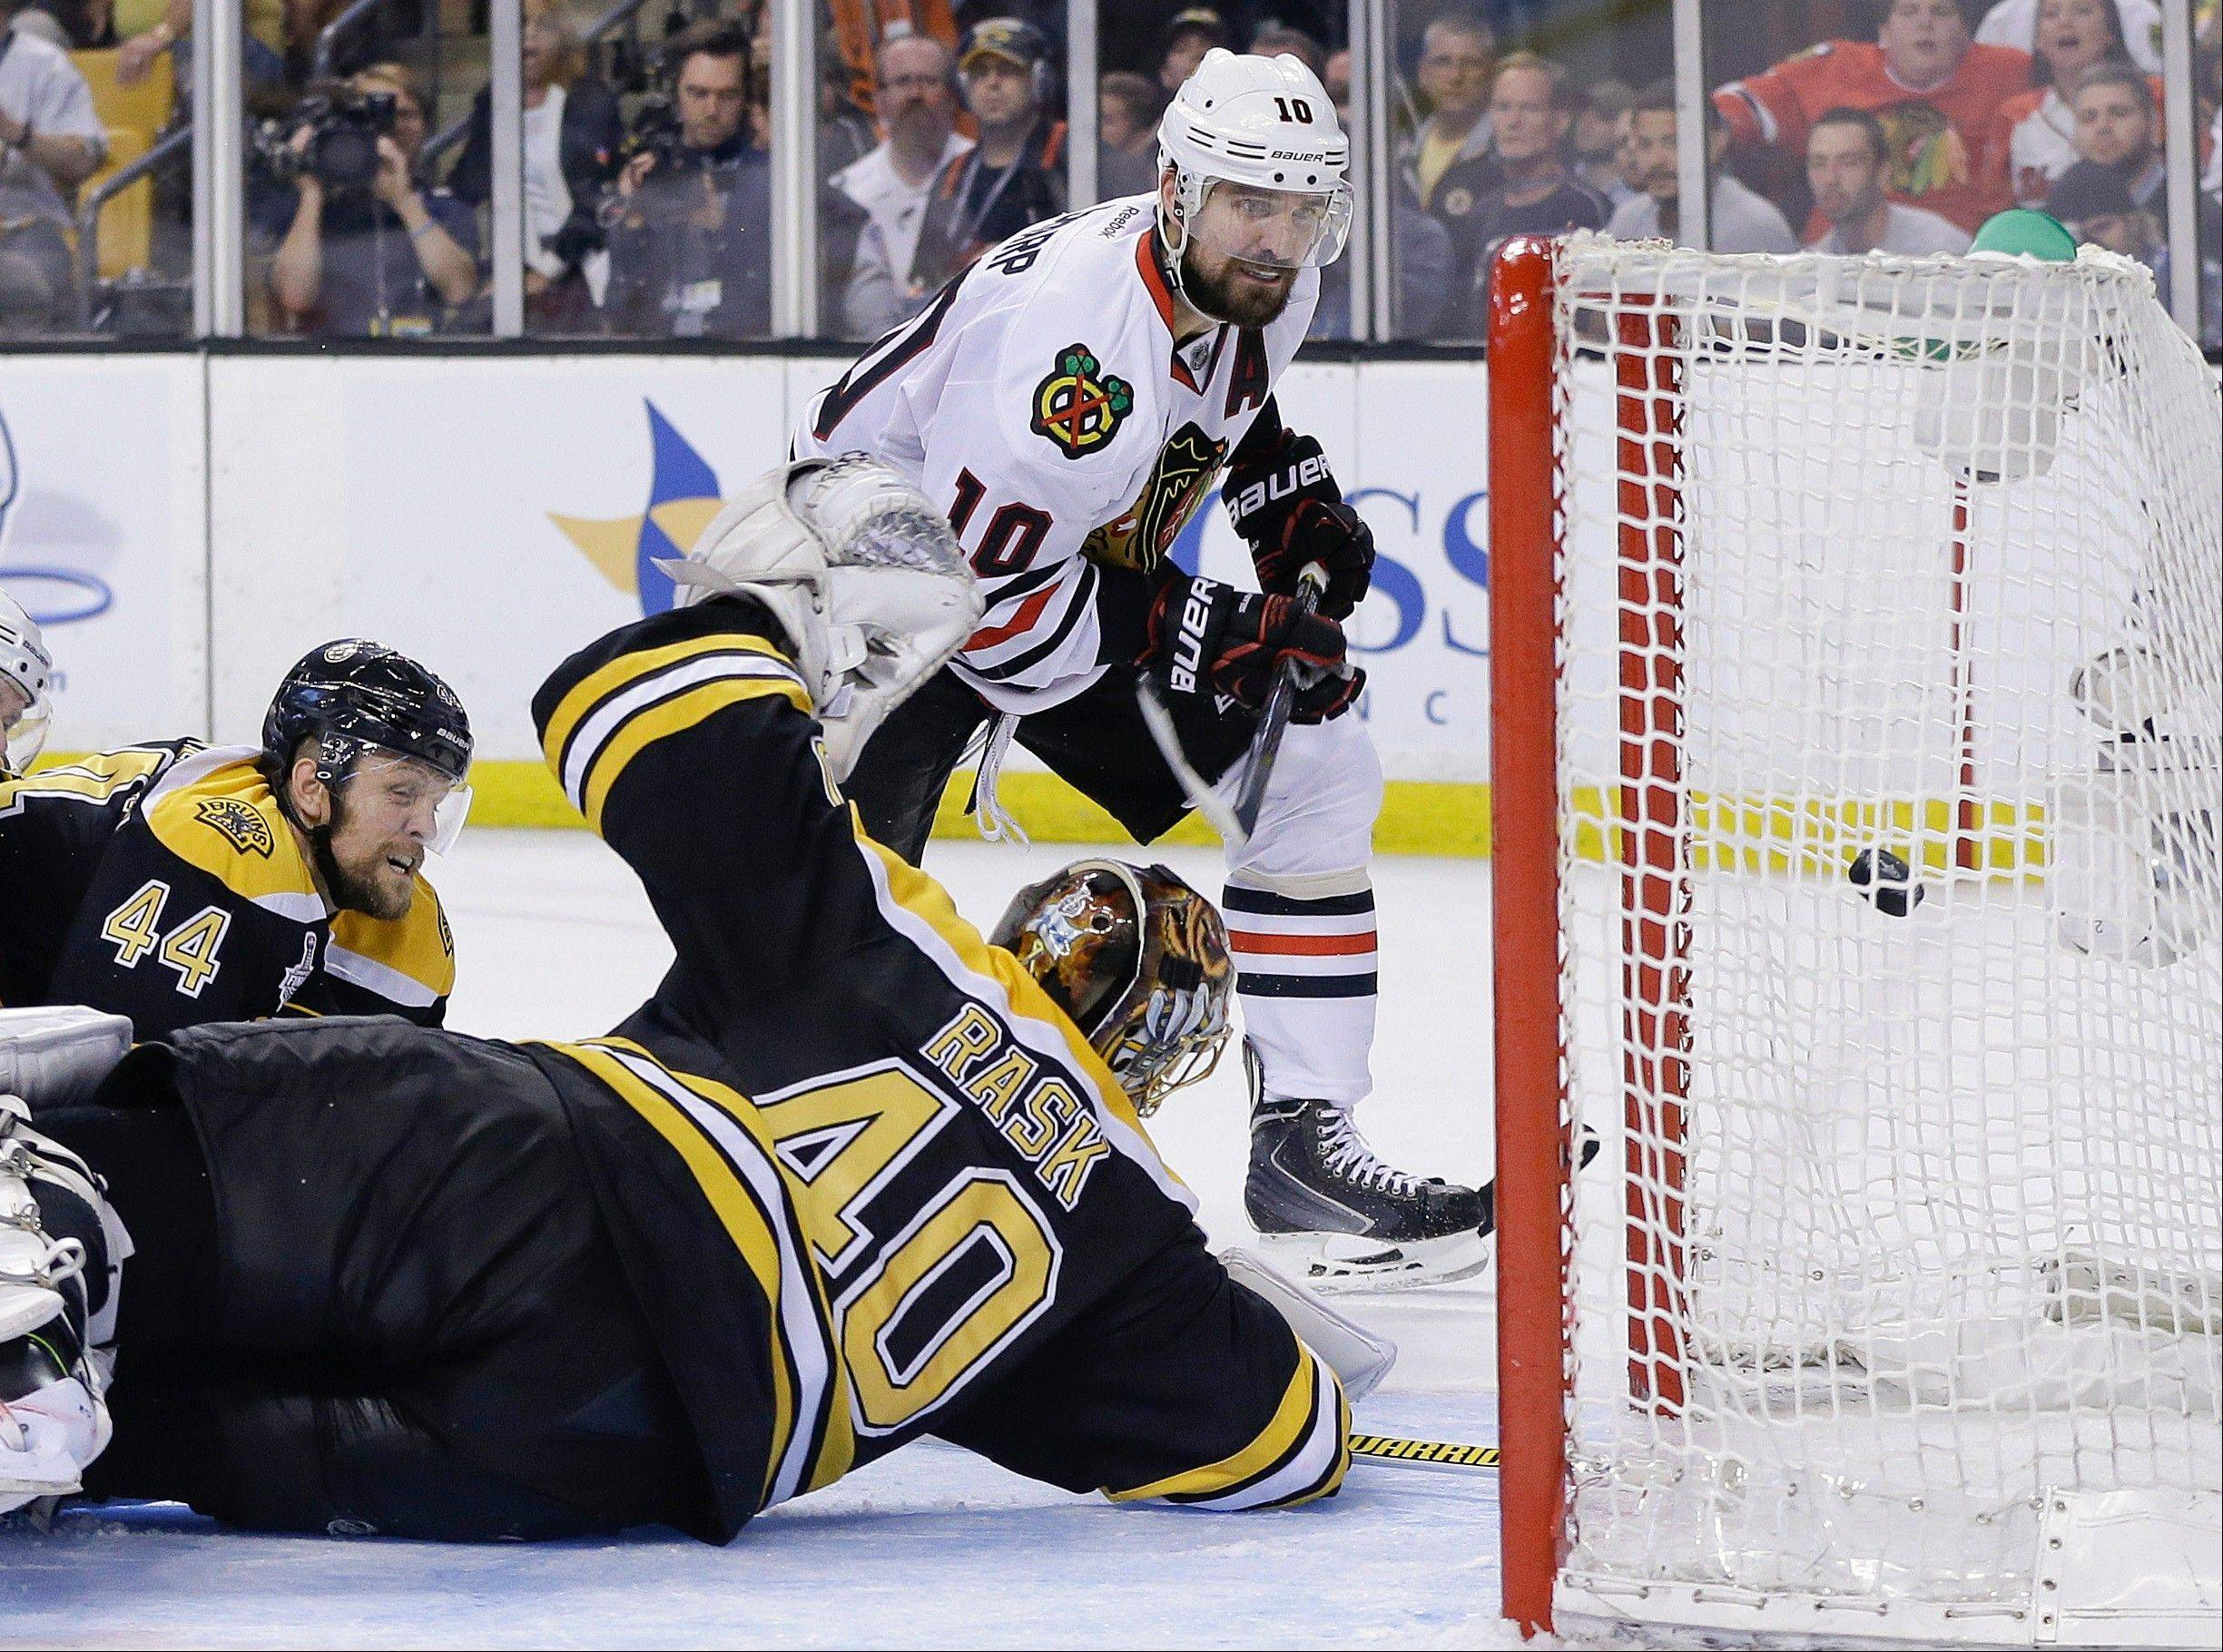 Chicago Blackhawks center Patrick Sharp (10) scores past Boston Bruins goalie Tuukka Rask (40), of Finland, and defenseman Dennis Seidenberg (44), of Germany, during the third period in Game 4 of the NHL hockey Stanley Cup Finals.